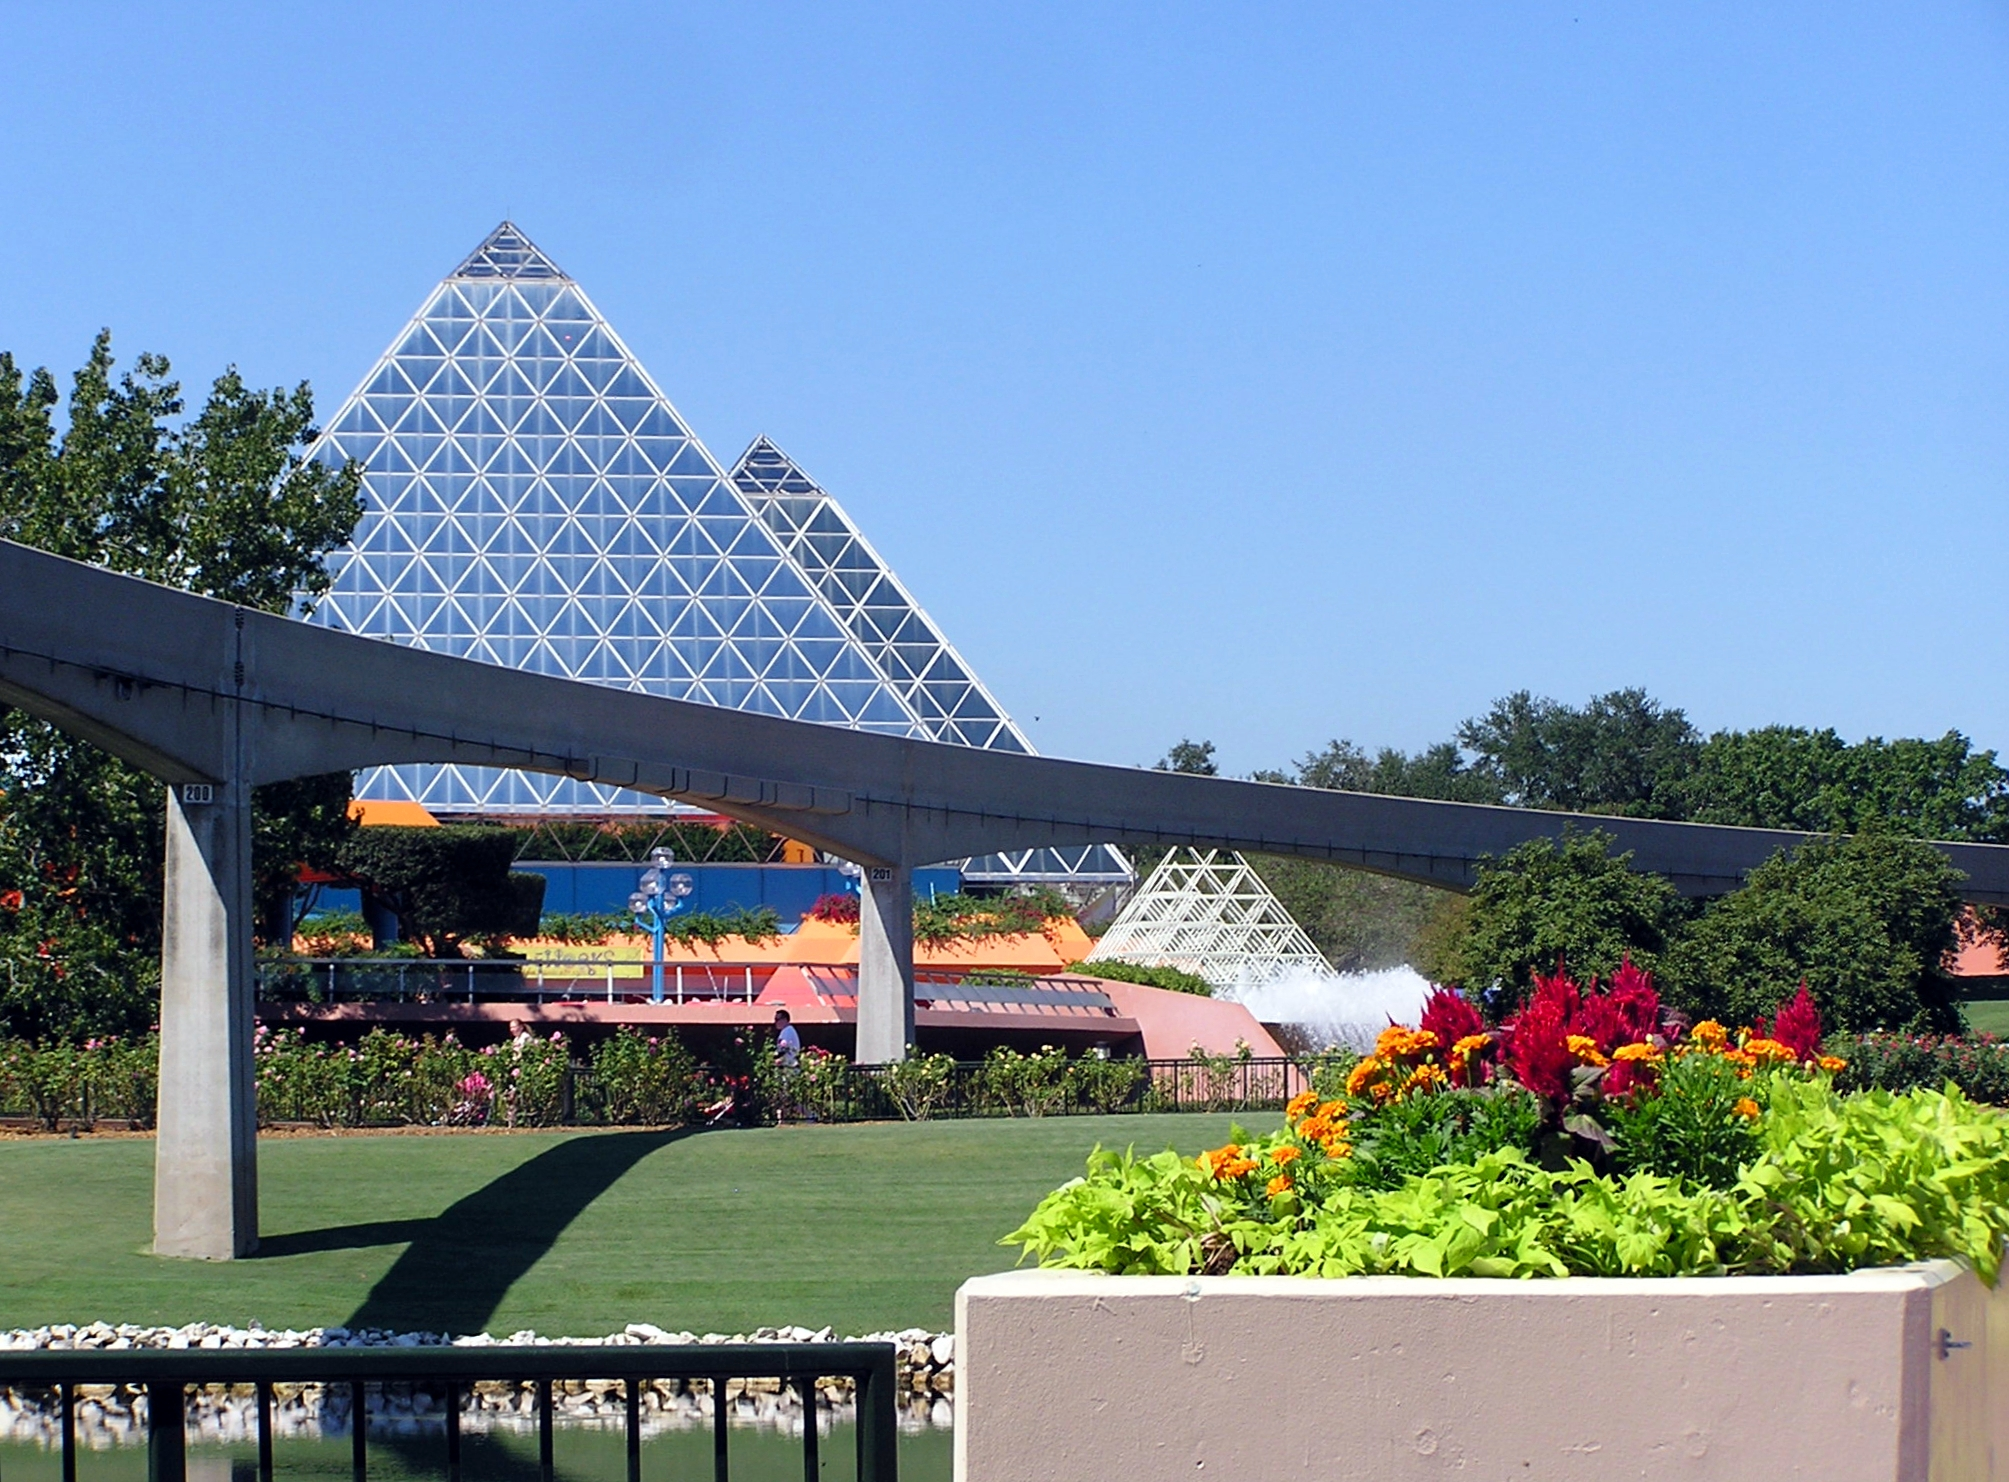 Jud's Disney Picture of the Day: Structure